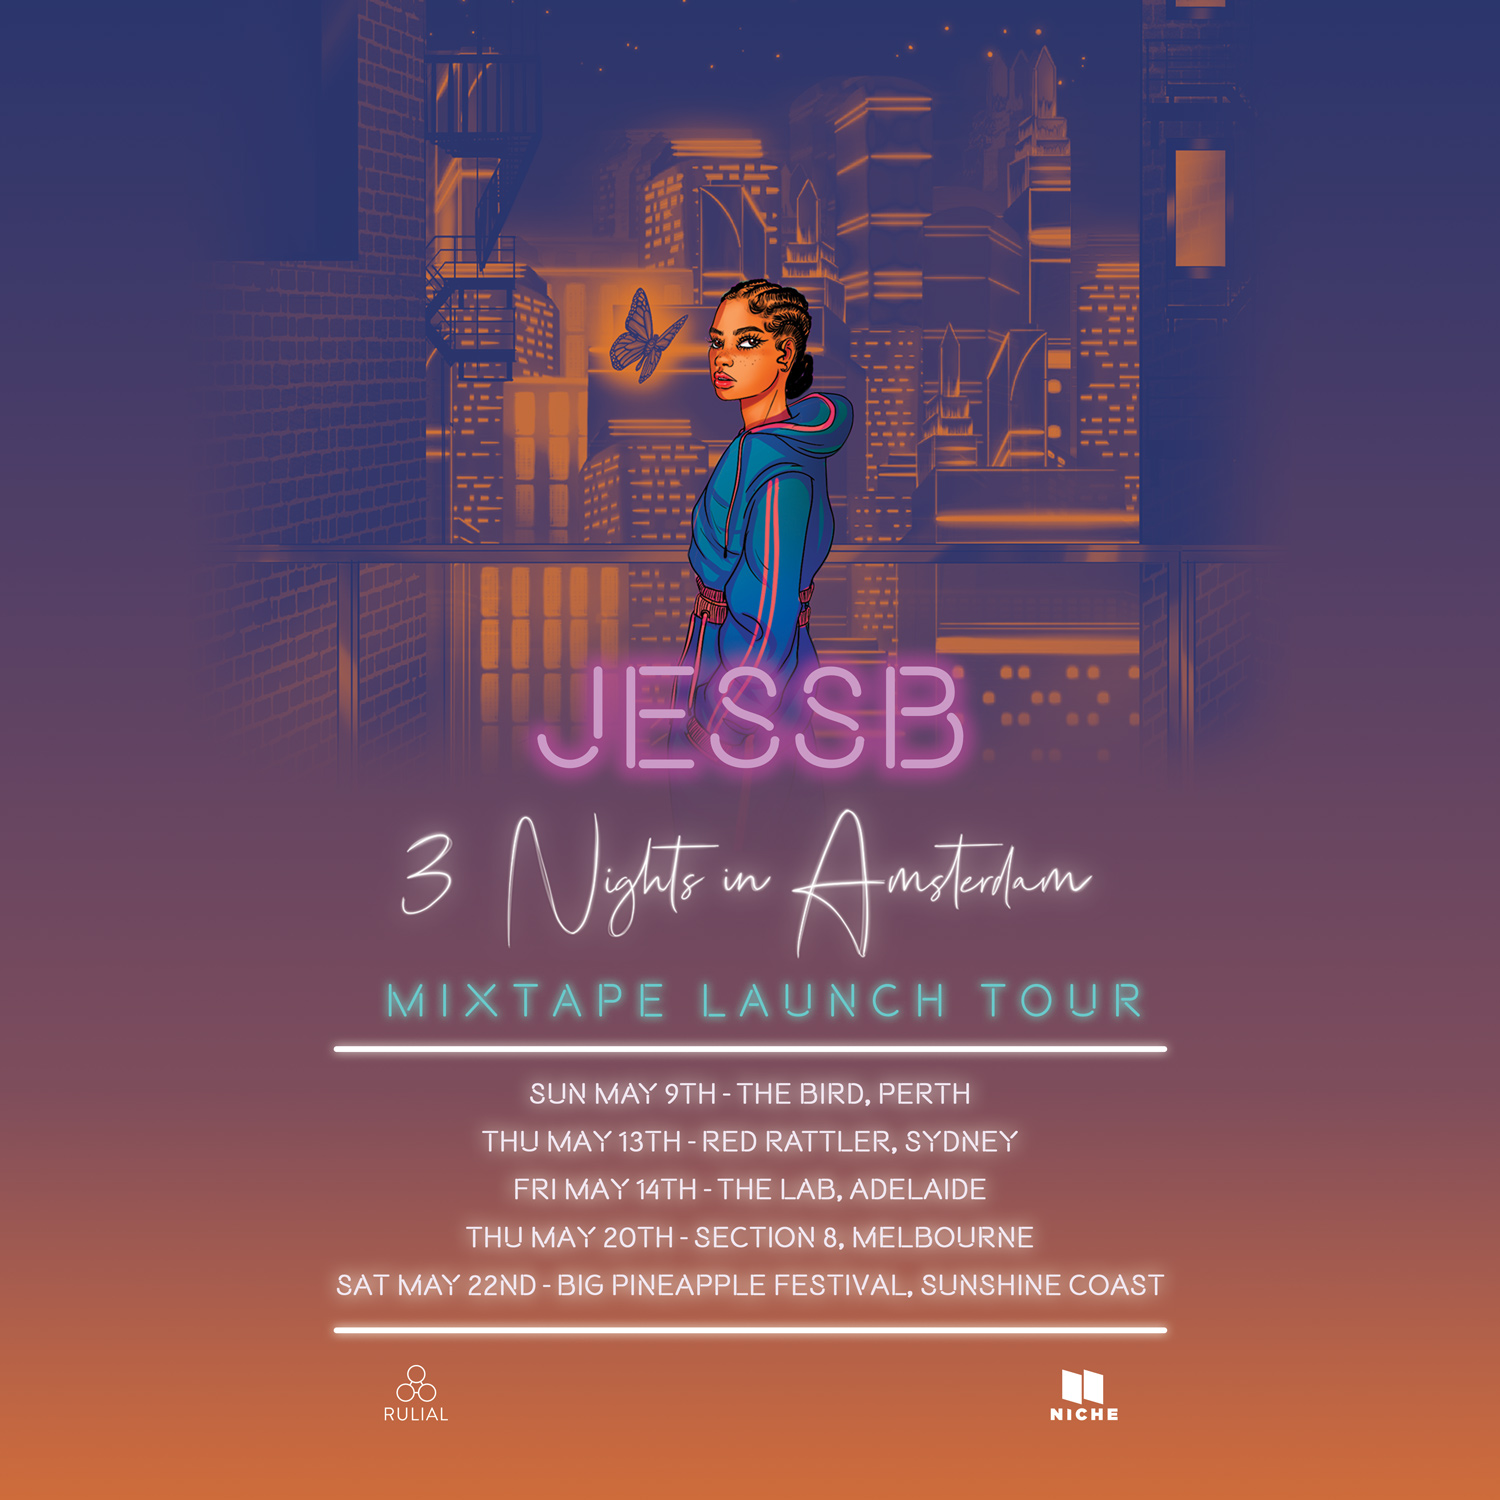 JessB launches her new project '3 Nights In Amsterdam' across Australia in May.